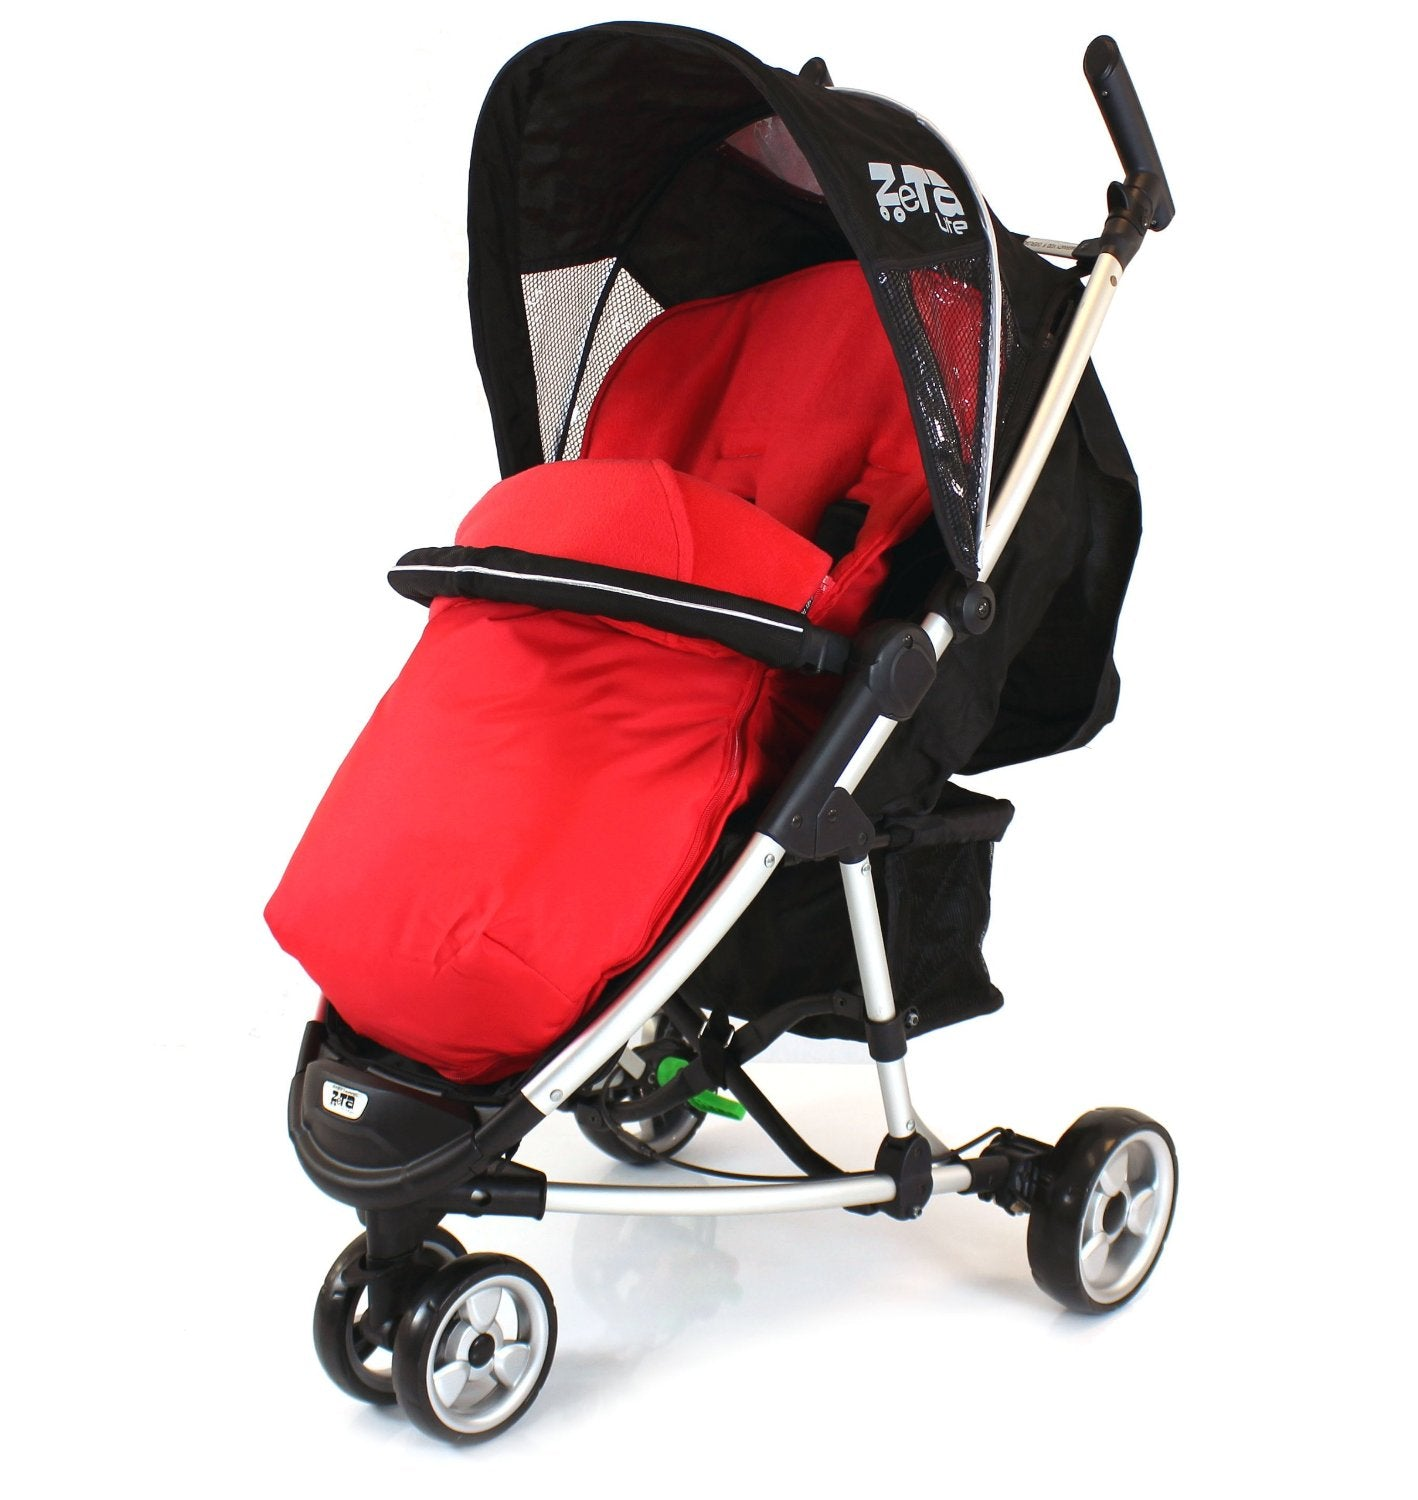 Buddy Jet Footmuff For Hauck Viper Trio Set Pooh Tidy Time